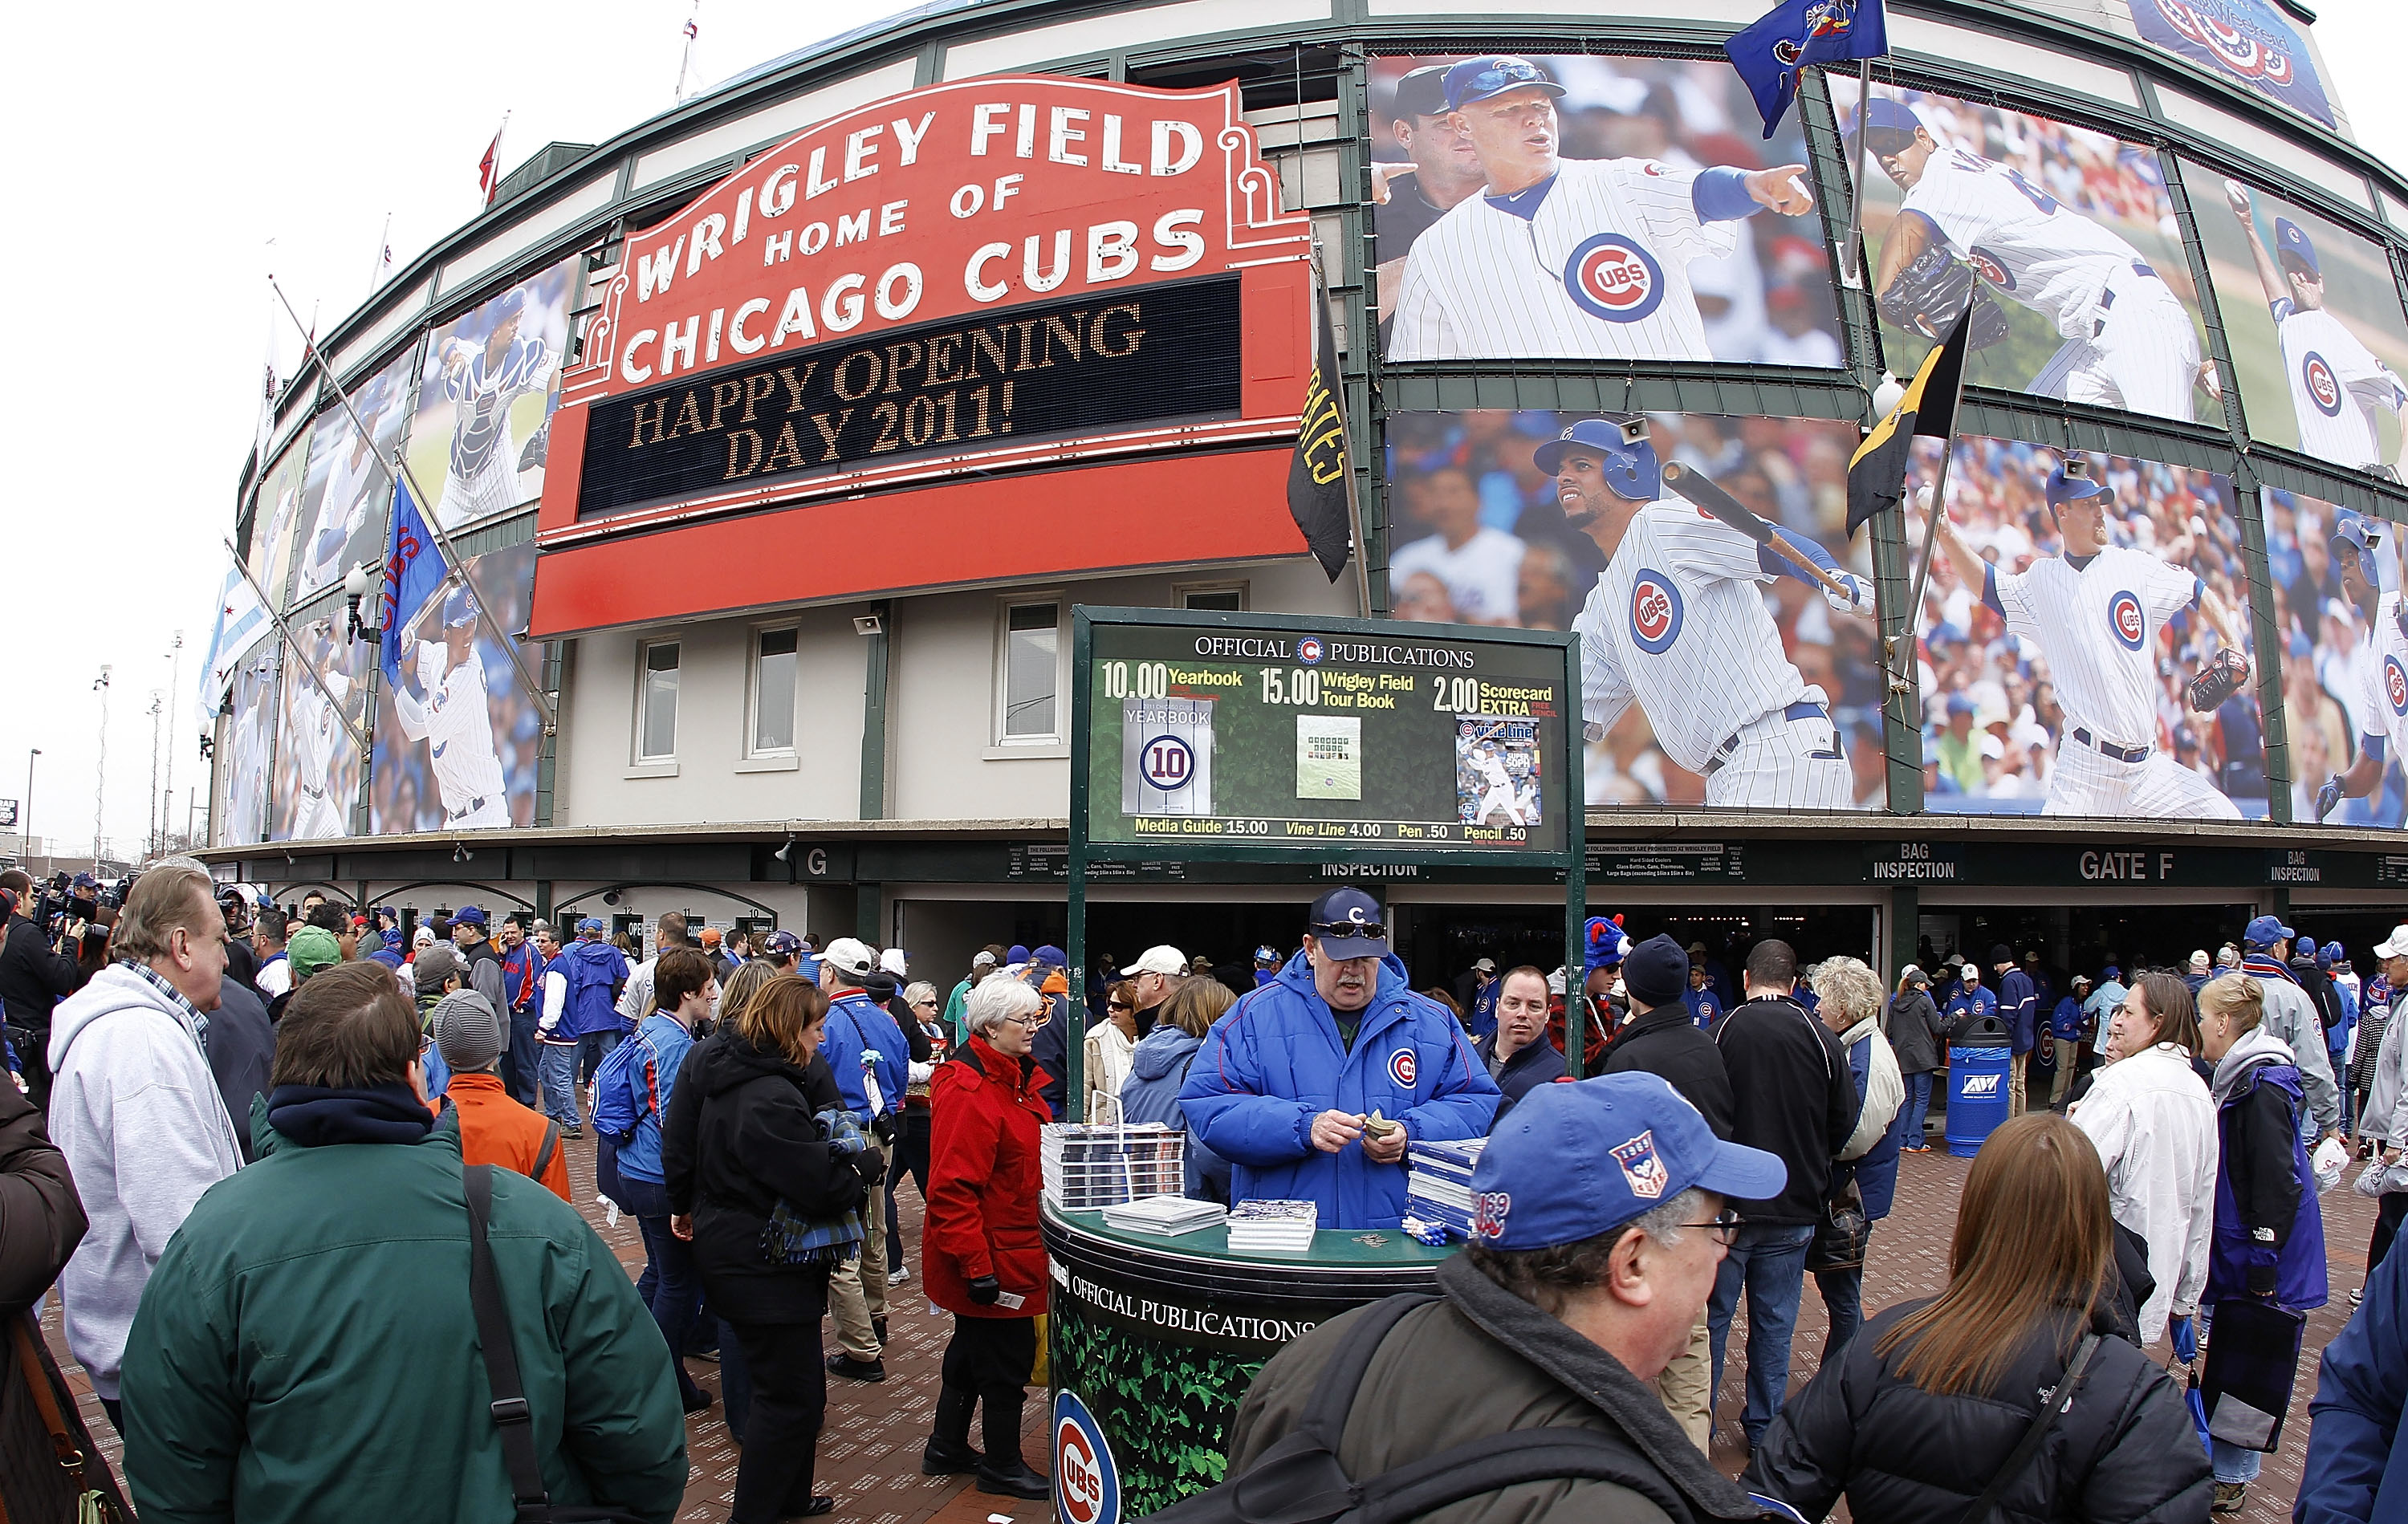 CHICAGO, IL - APRIL 01:  Fans head to the stadium prior to the Chicago Cubs playing the Pittsburgh Pirates on opening day at Wrigley Field on April 1, 2011 in Chicago, Illinois.  (Photo by Gregory Shamus/Getty Images)